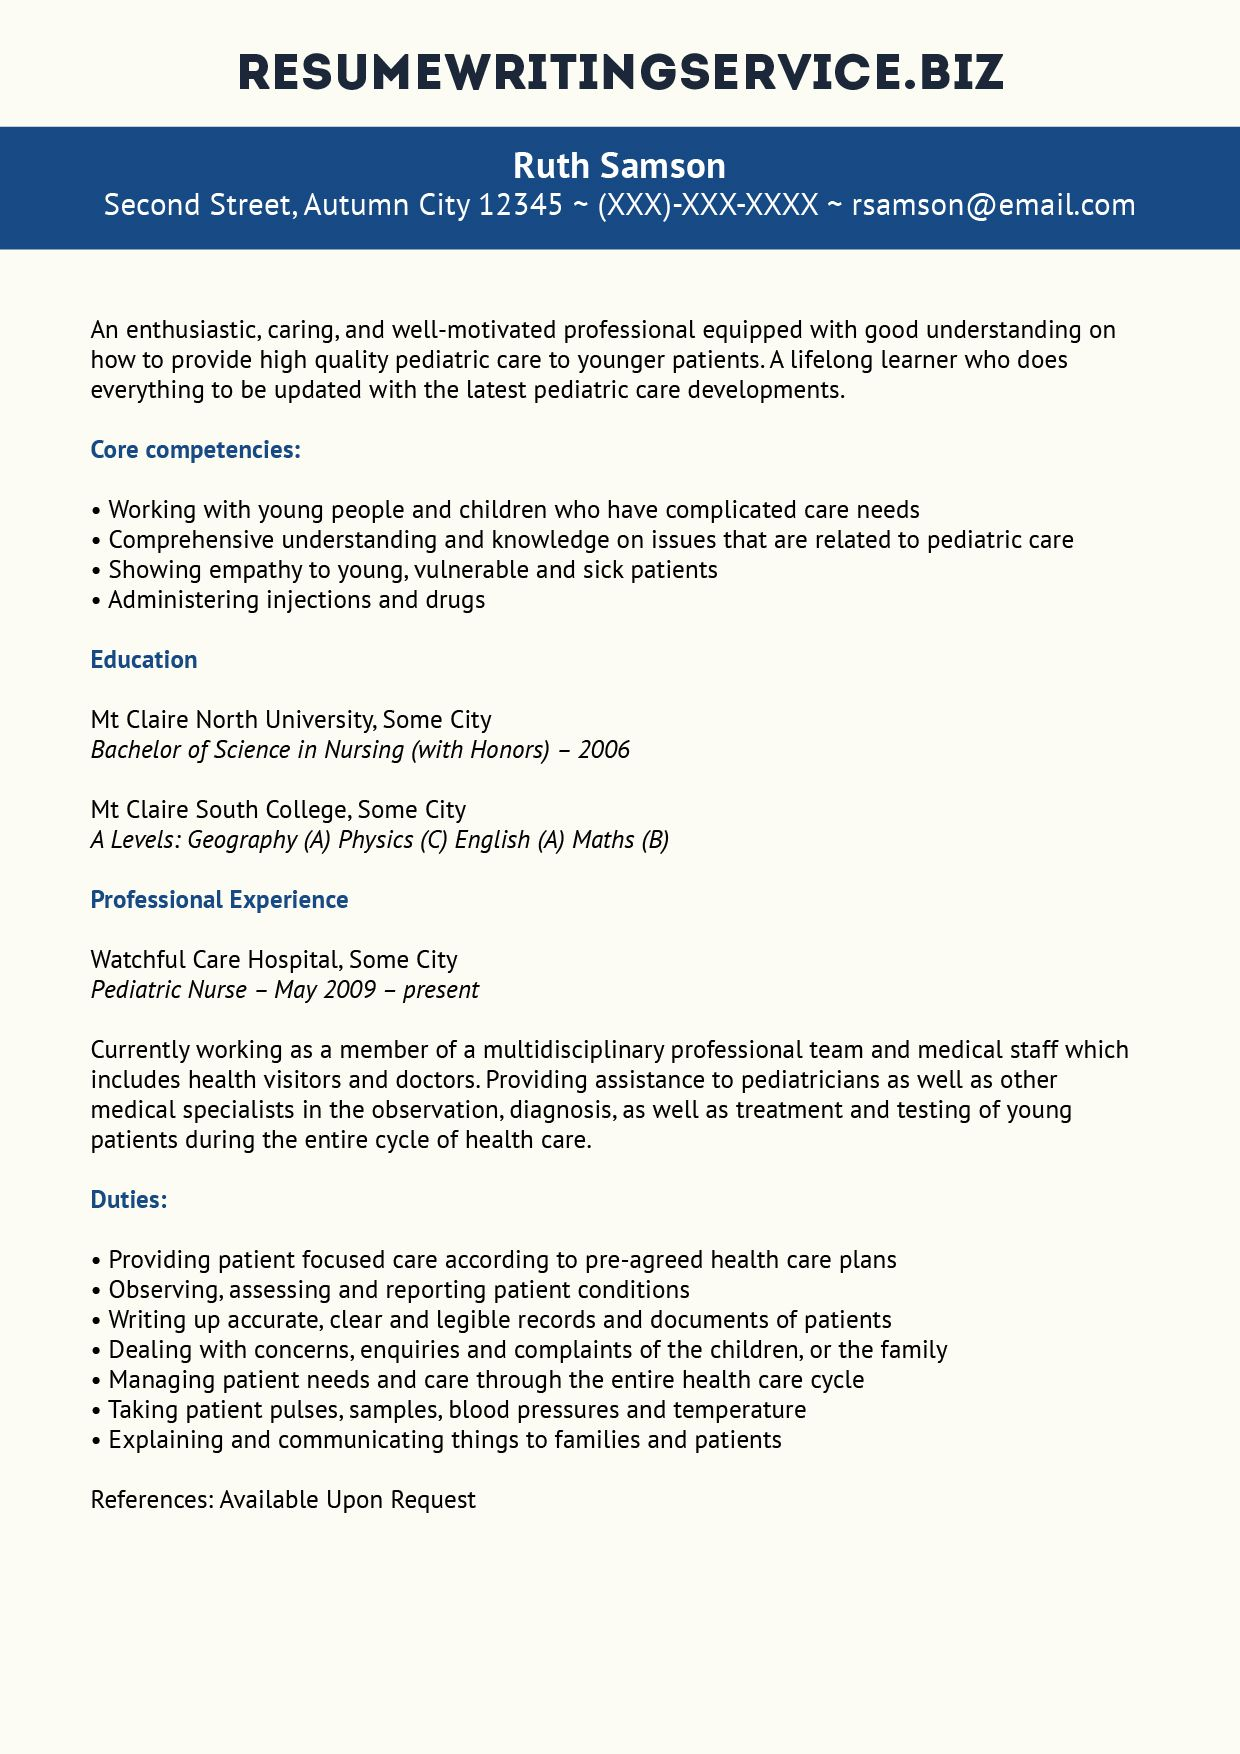 Pediatric Nurse Resume Sample Resume writing services